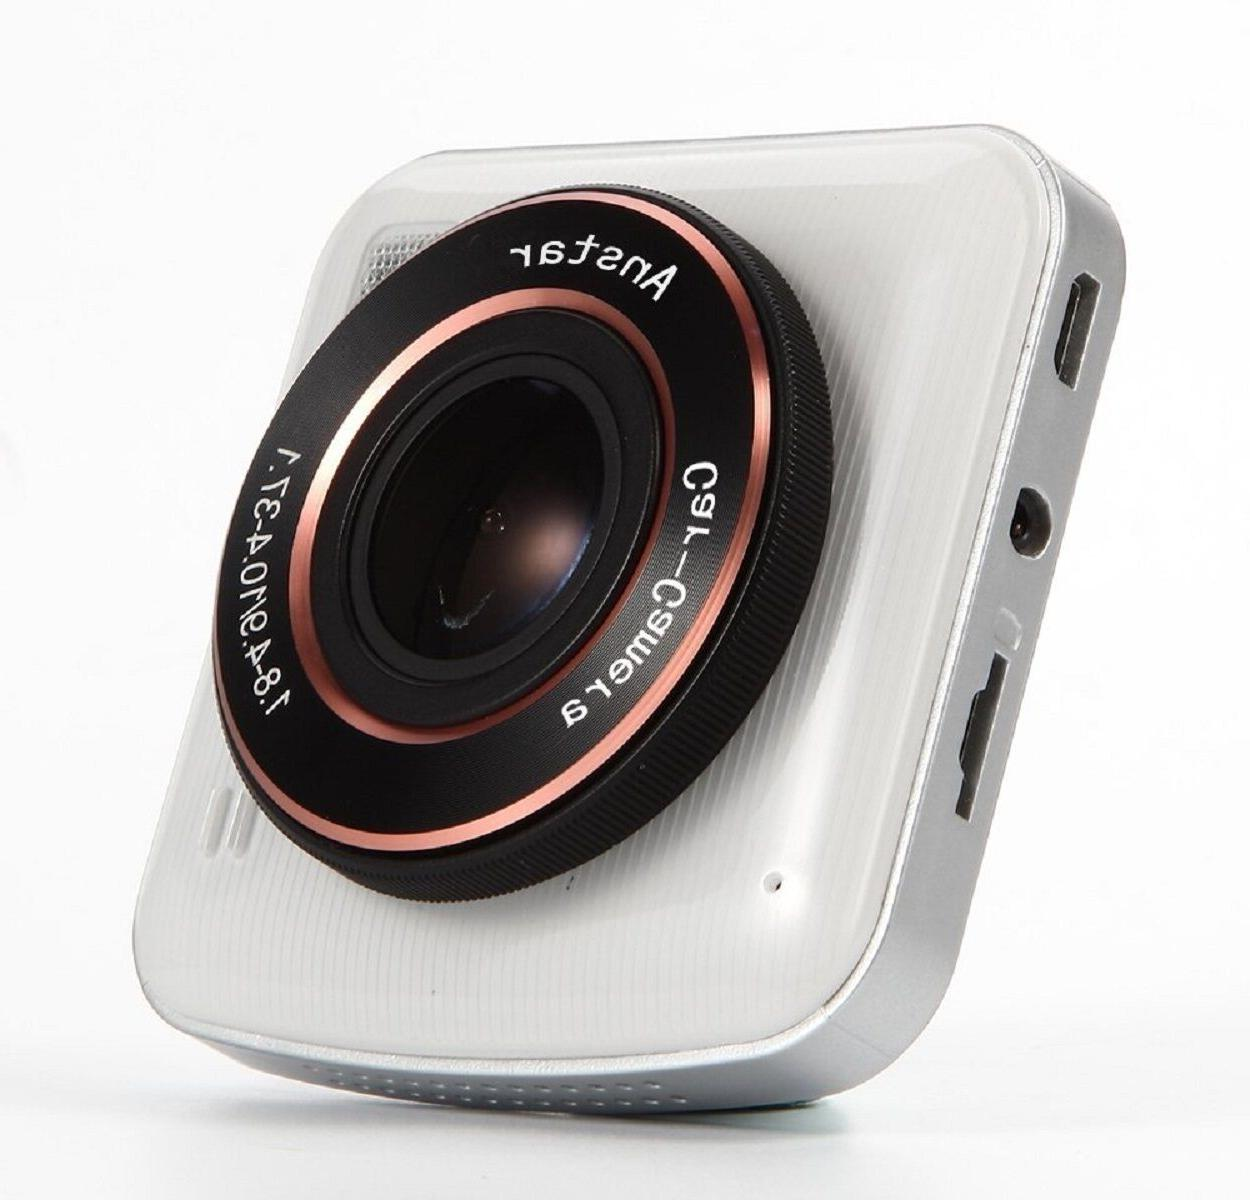 DASH CAM CAMERA FOR CARS VIDEO RECORDER DVR ANSTAR Charger a